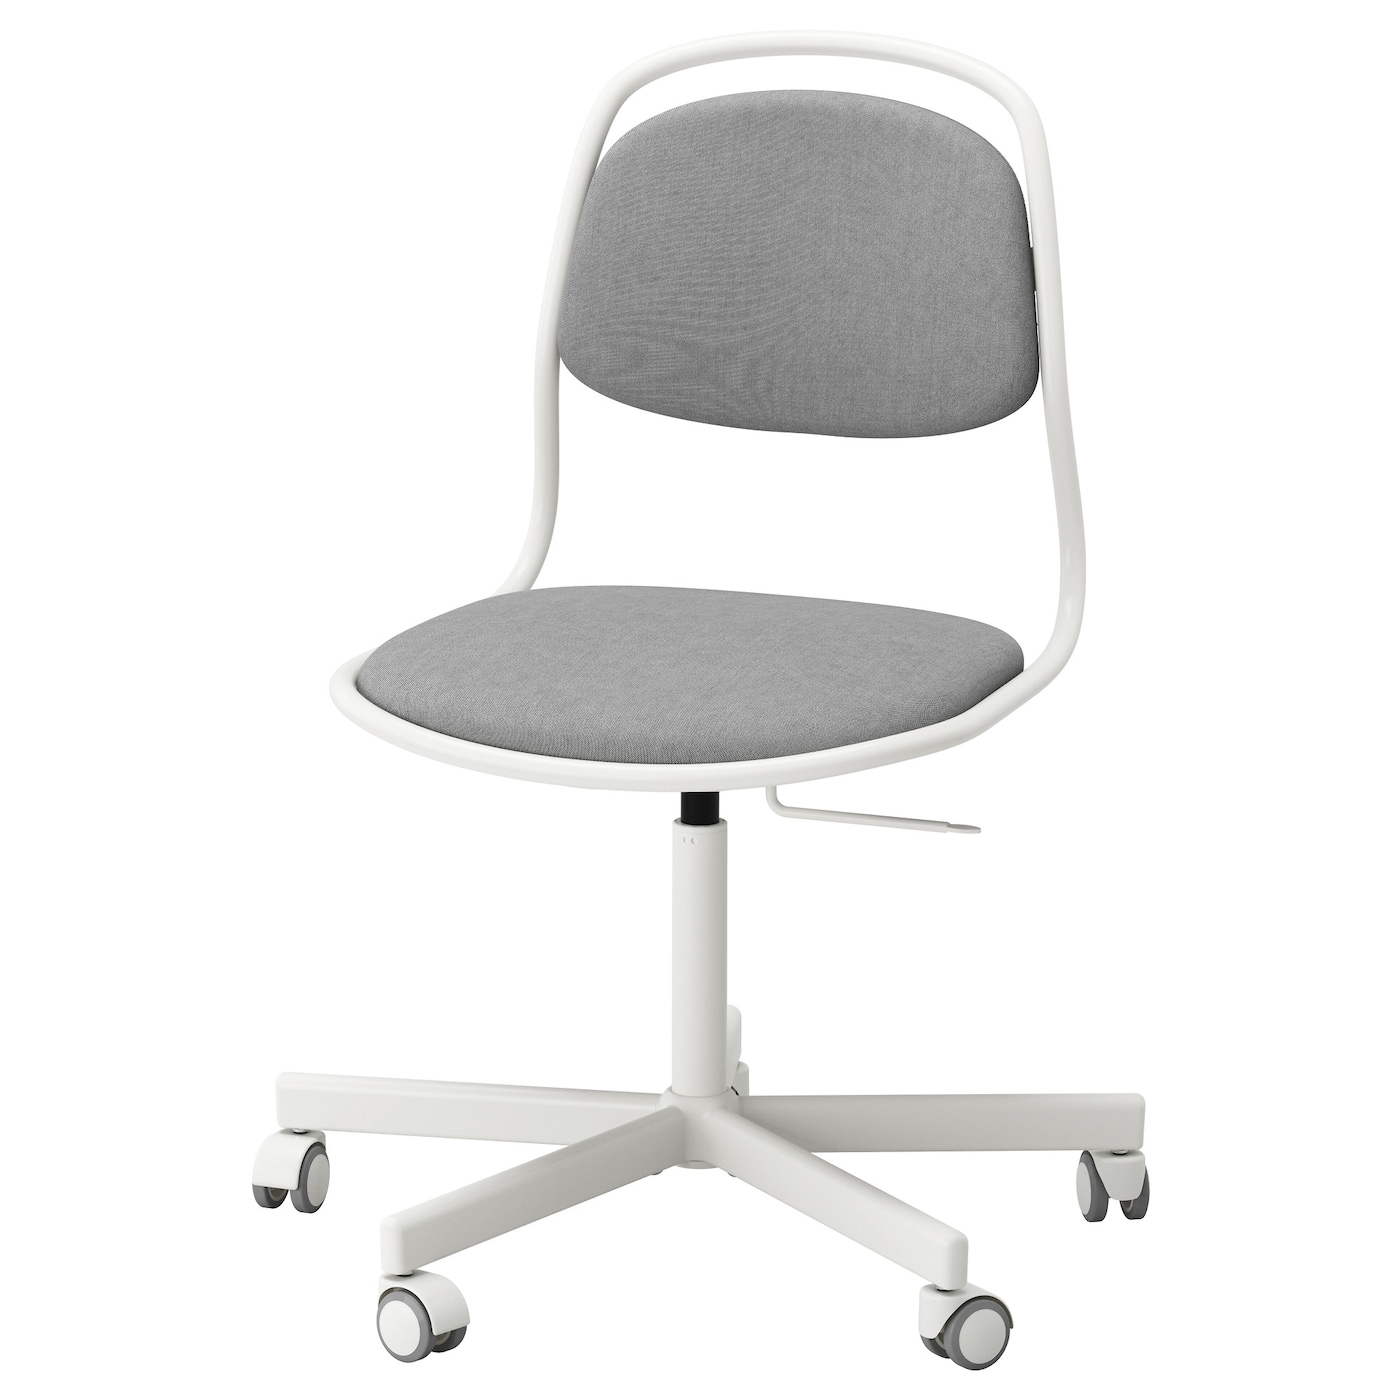 ikea office chairs canada. ikea rfjllsporren swivel chair you sit comfortably since the is adjustable in height ikea office chairs canada